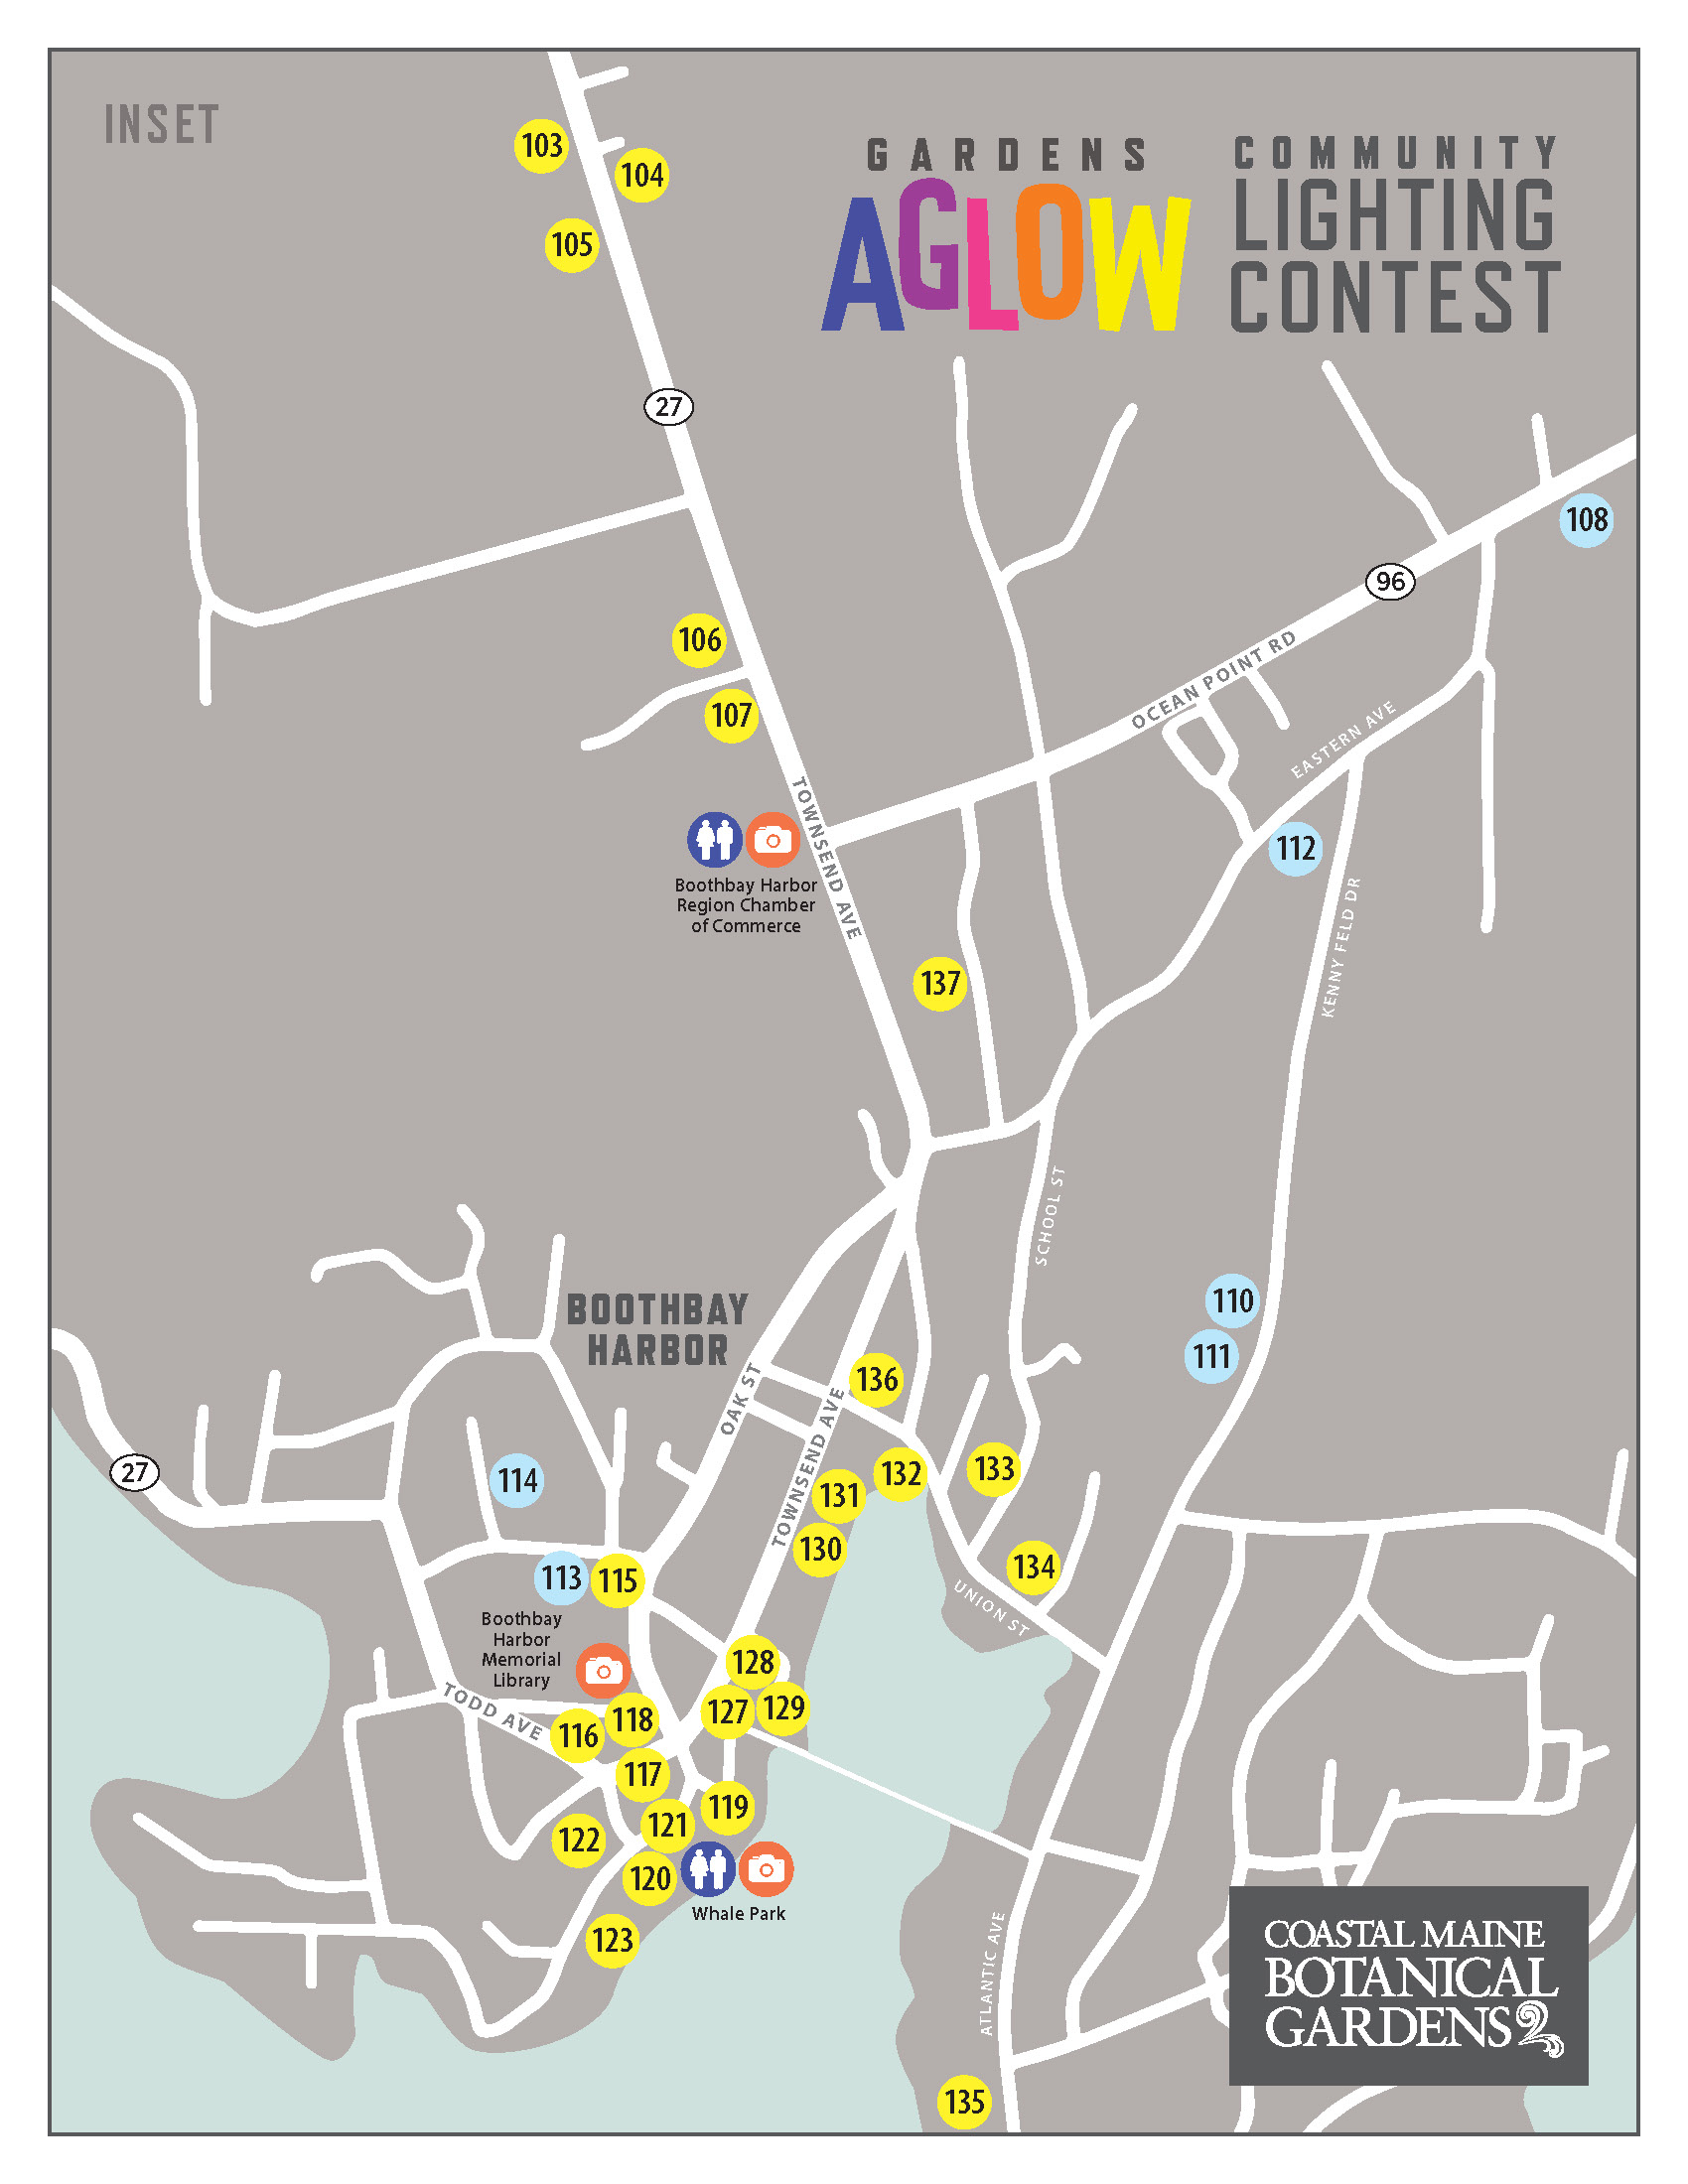 Community Lighting Contest Map of downtown Boothbay Harbor.